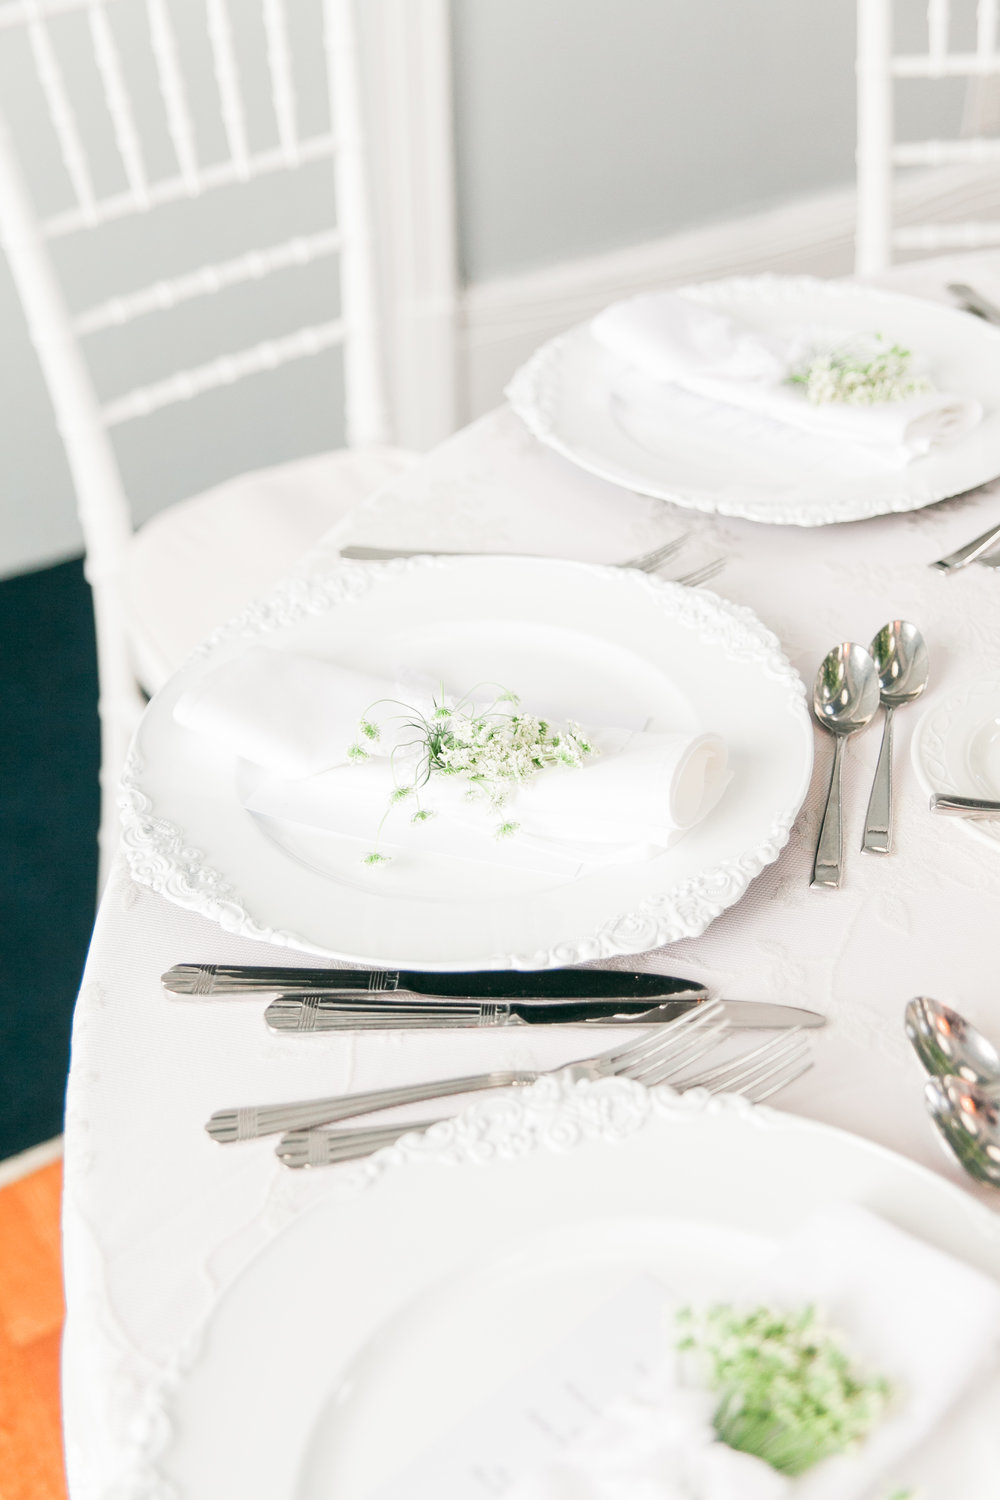 White and green fresh wedding details